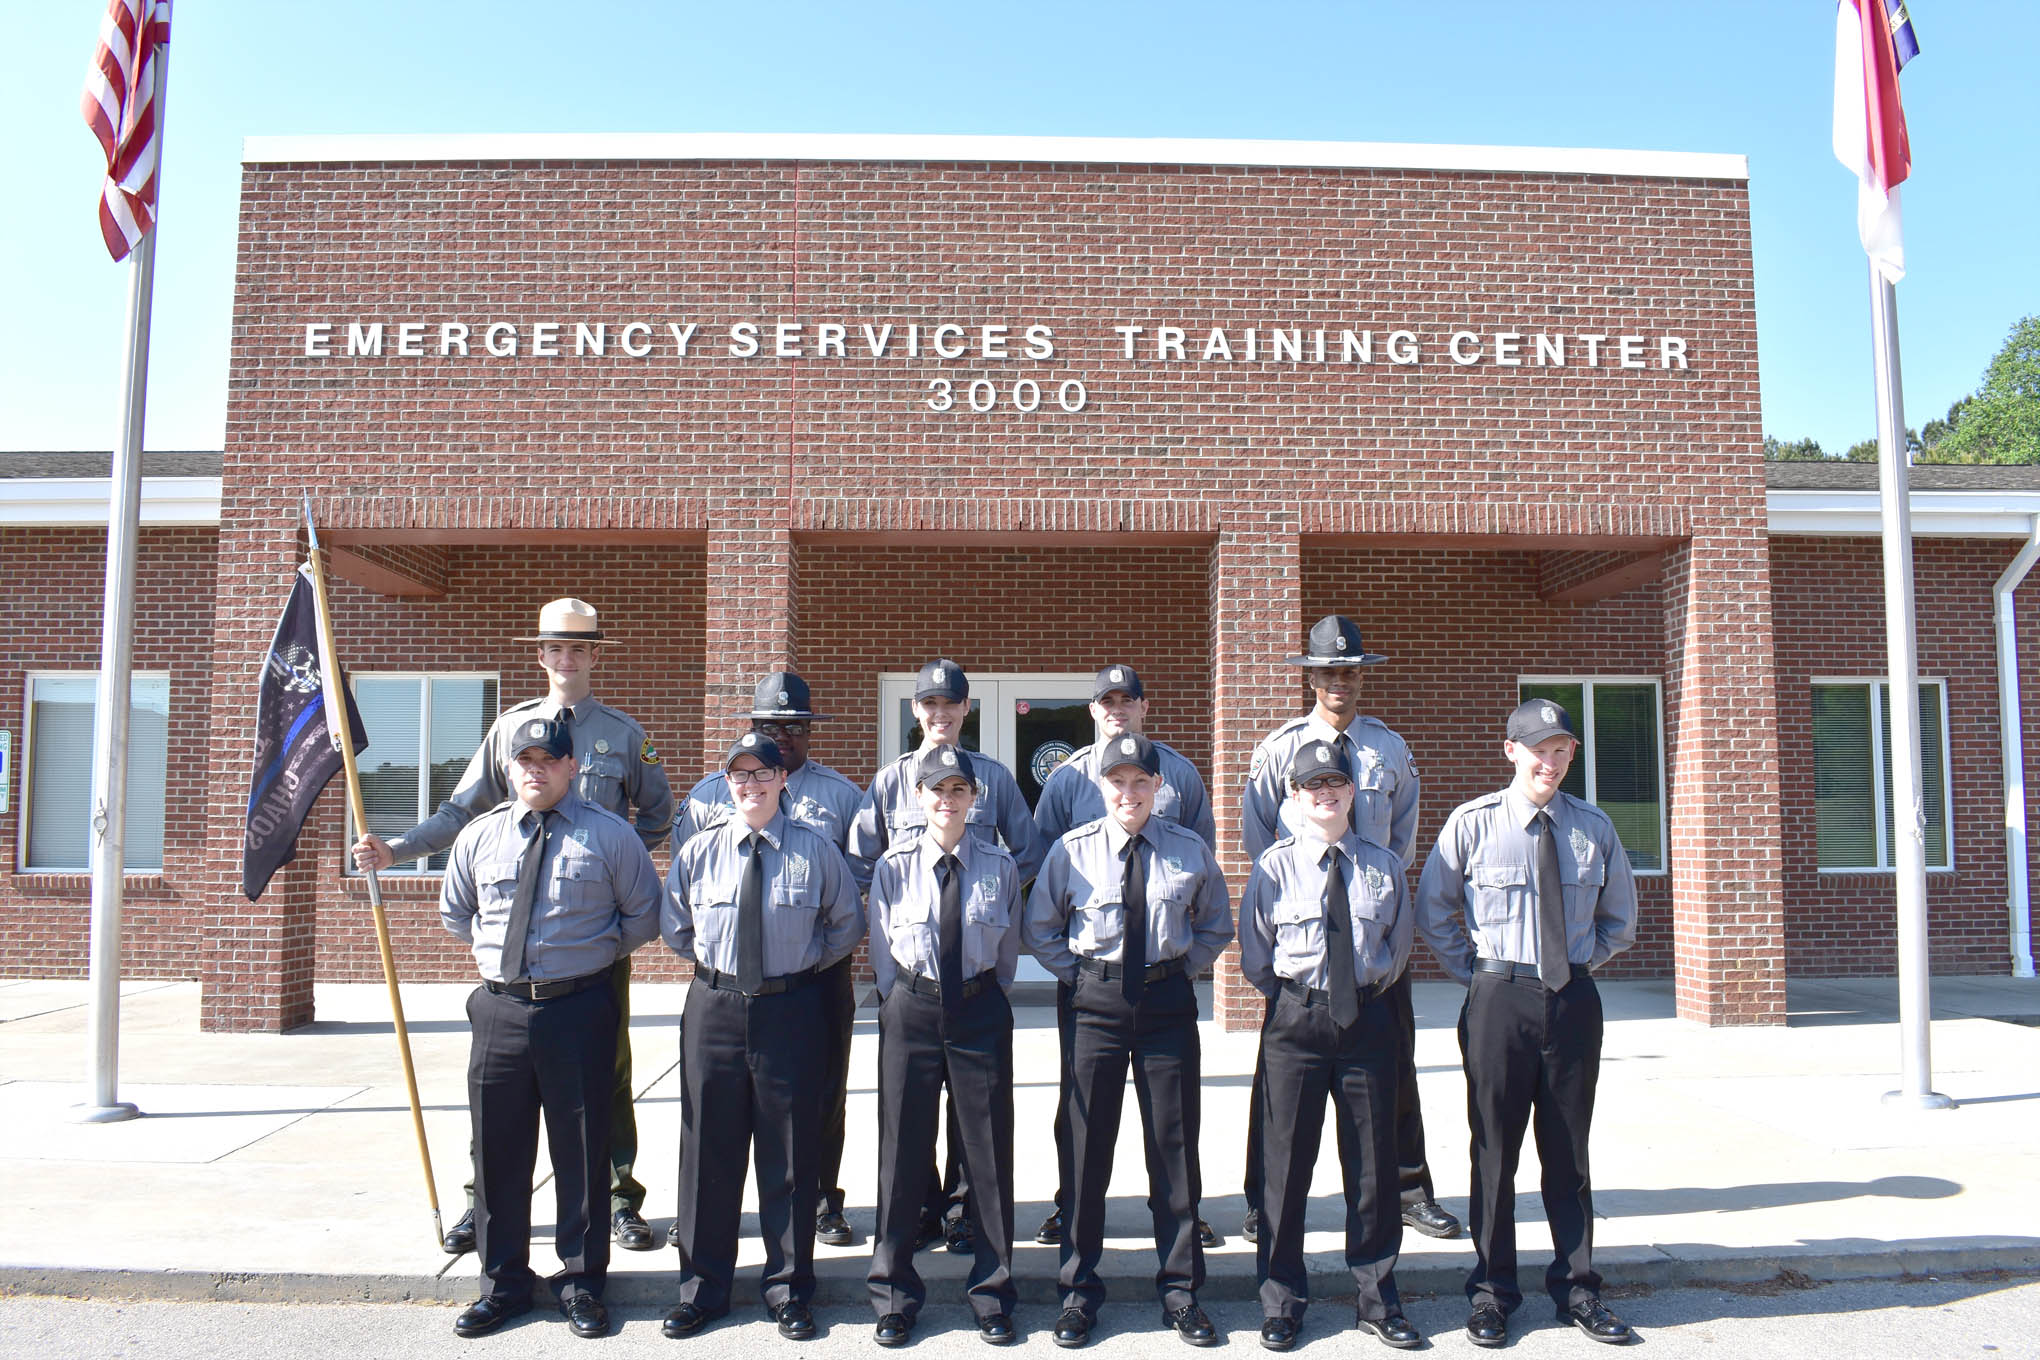 Click to enlarge,  Pictured are members of Central Carolina Community College's Basic Law Enforcement Training (BLET) spring class. For more information about the college's BLET program, visit www.cccc.edu/blet or contact Robert Powell at rpowell@cccc.edu or 919-777-7774.